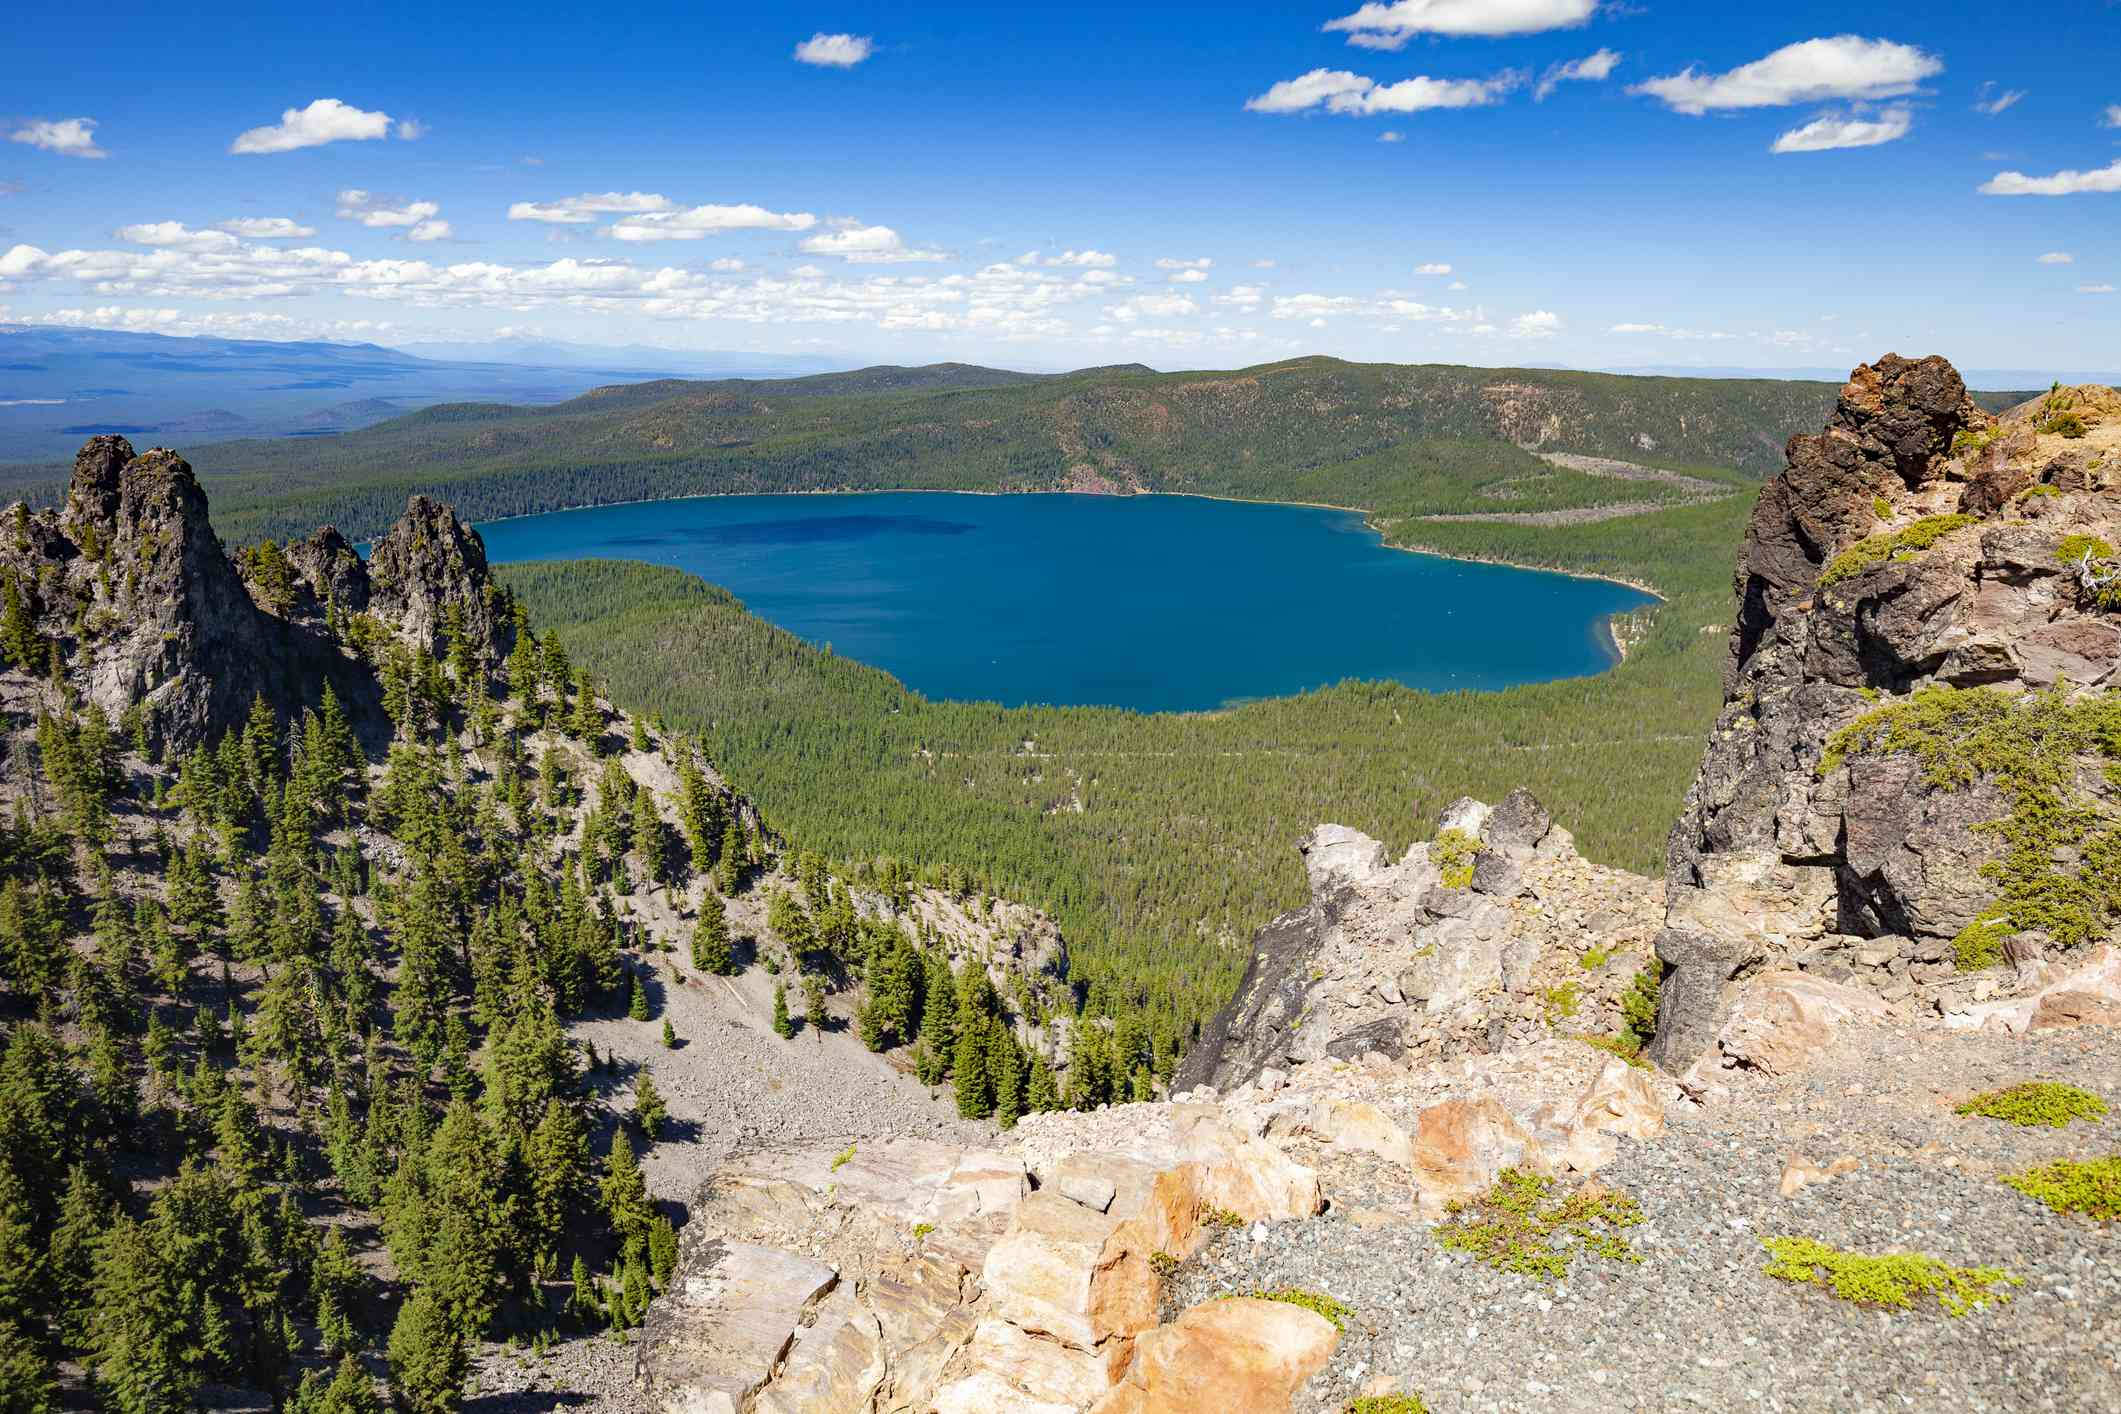 High-angle view of blue lake in Newberry National Volcanic Monument